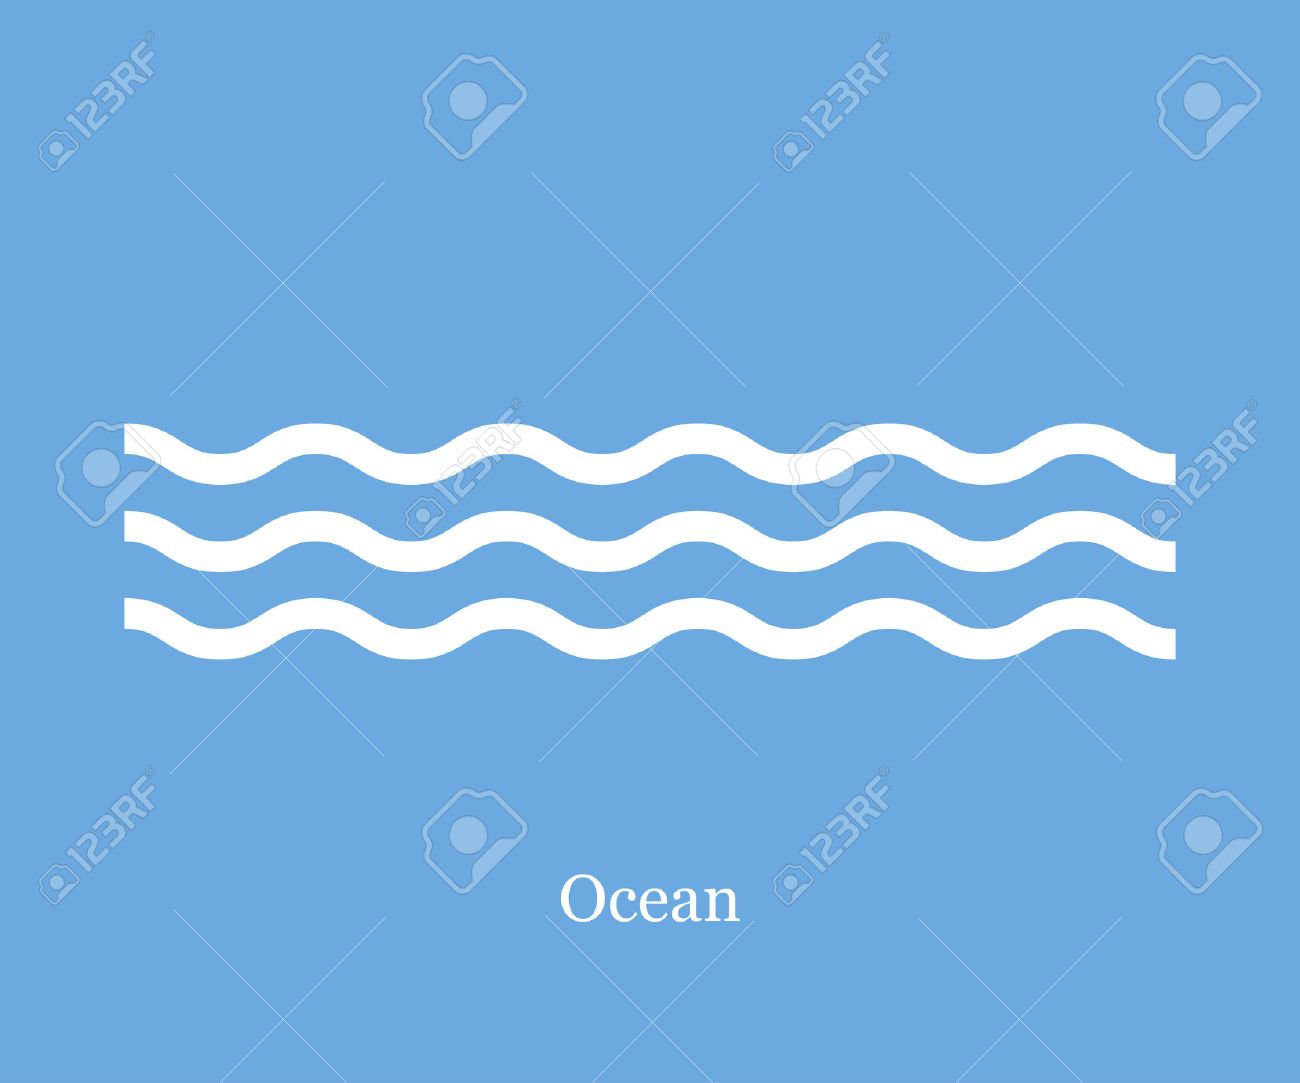 Waves icon ocean on a blue background - 58705421